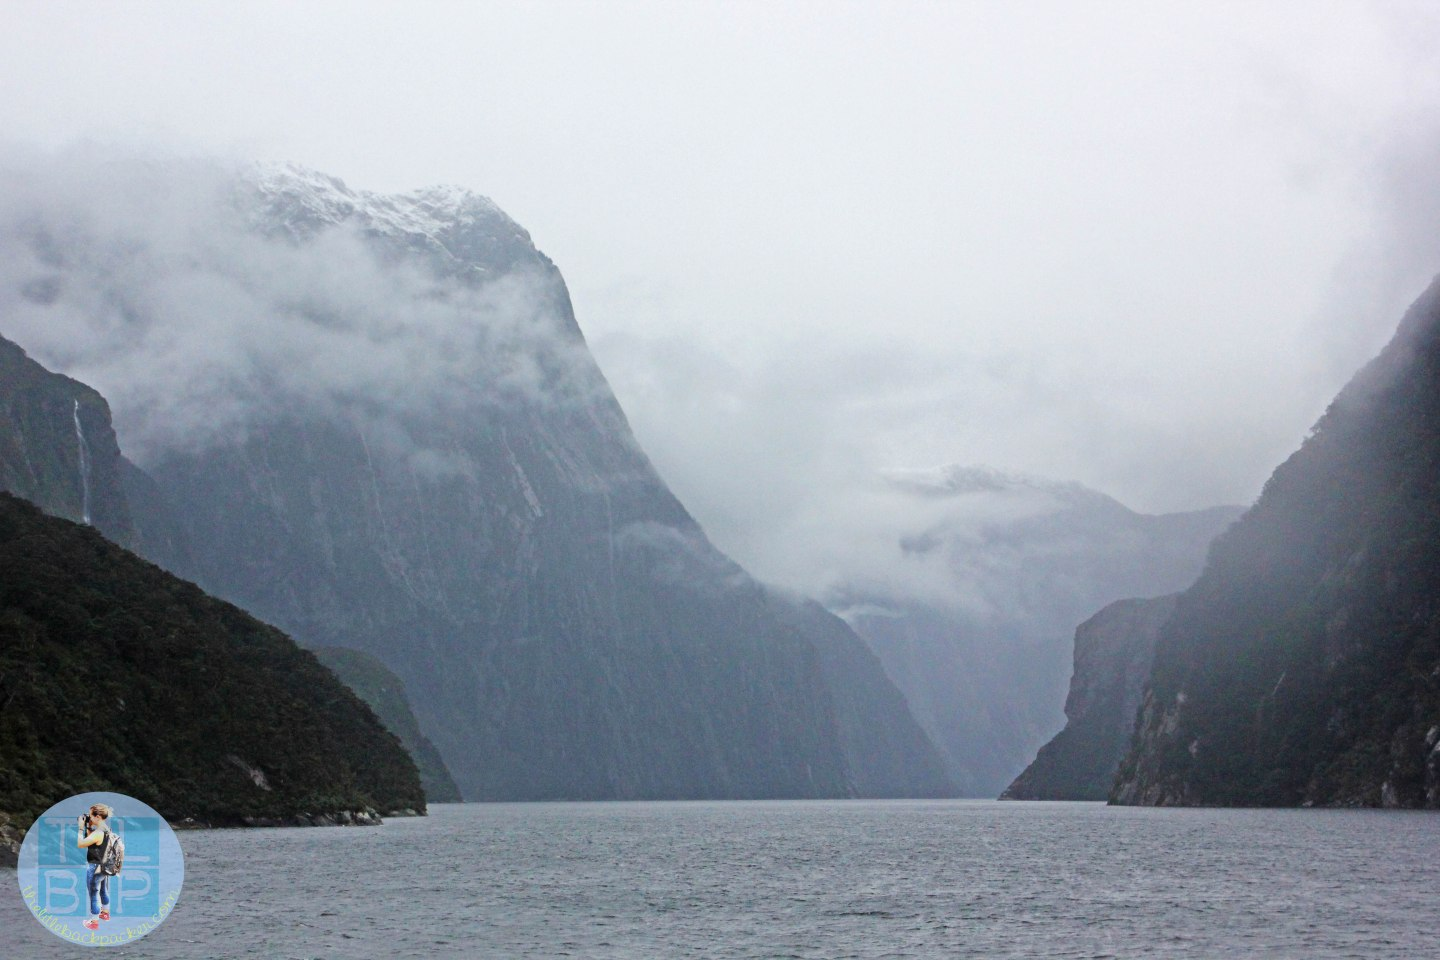 REVIEWED: Milford Sound With The Kiwi Experience